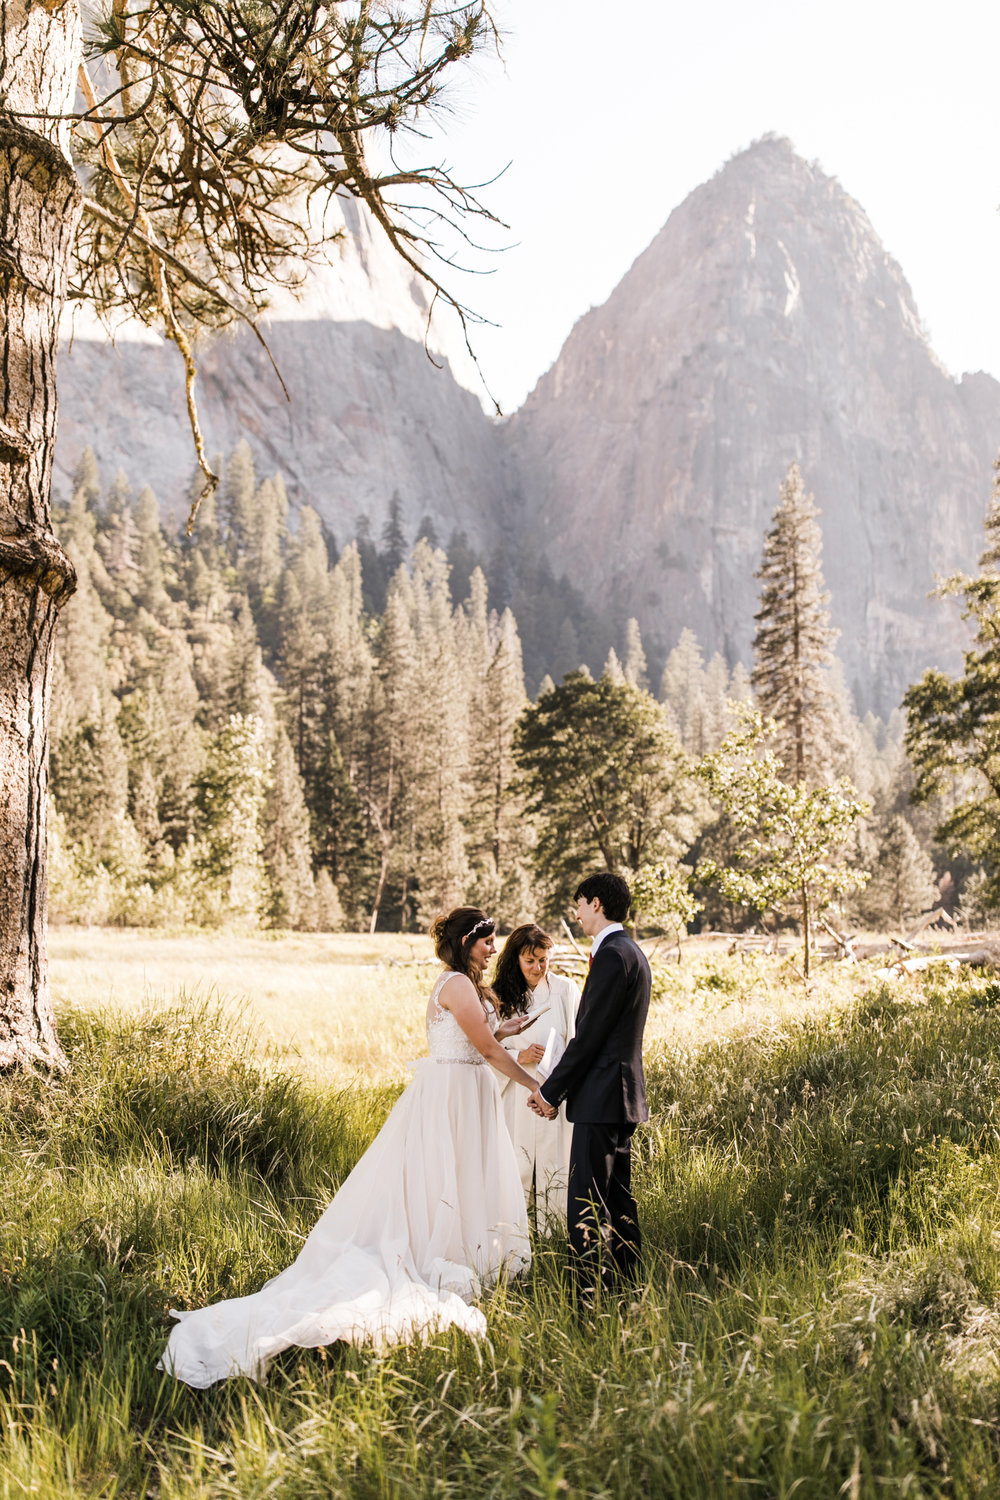 Yosemite-National-Park-Wedding-Photographer-Adventure-Wedding-Photos-Hearnes-Elopement-Photography-El-Cap-Meadow-Ceremony-Glacier-Point-Sunset-14.jpg